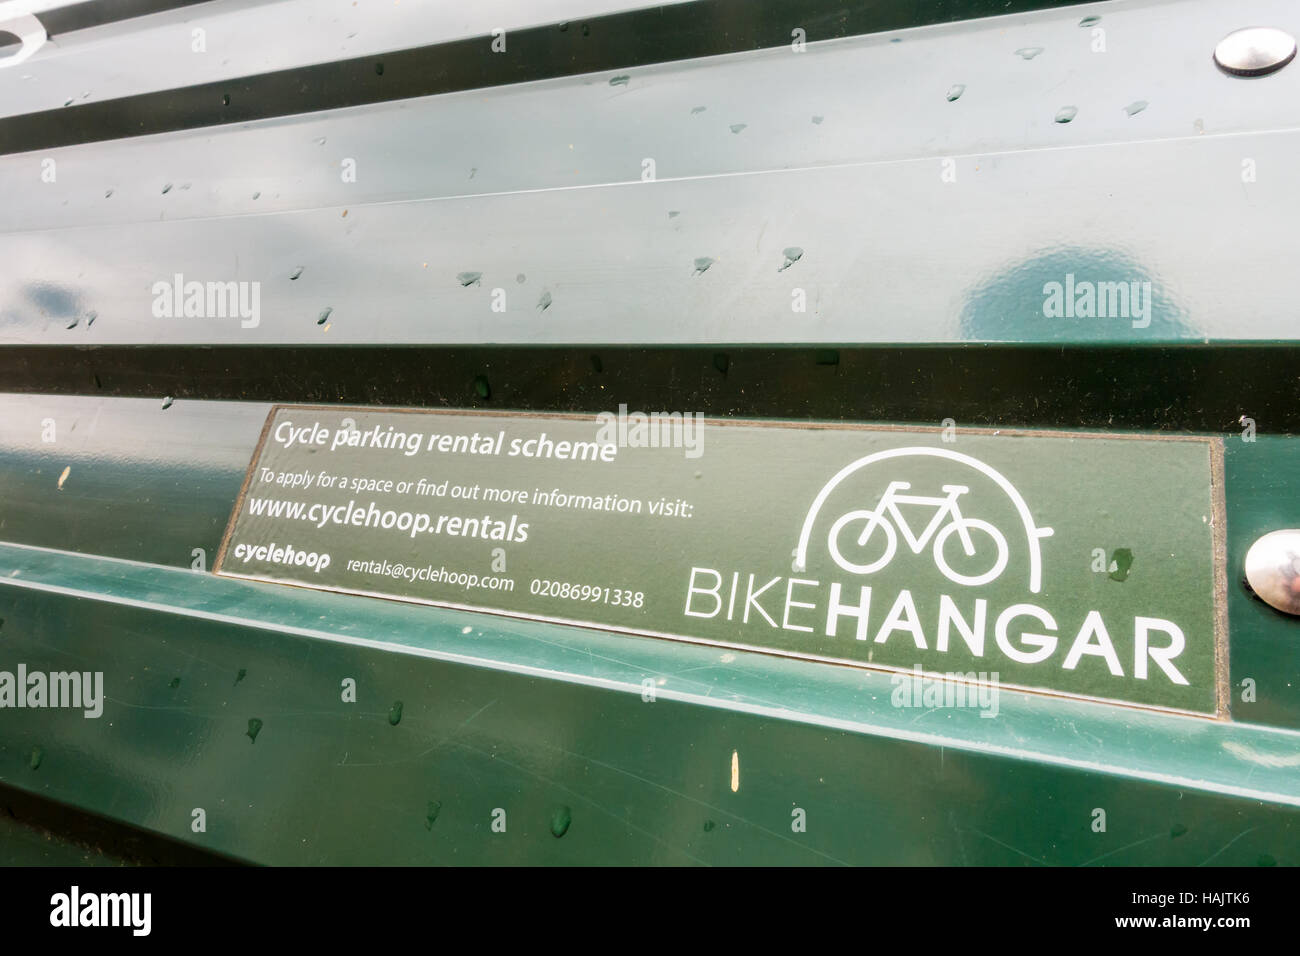 A Bike Hangar, Or Street Secure Storage Rental Scheme For Bicycles In  Waltham Forest, London